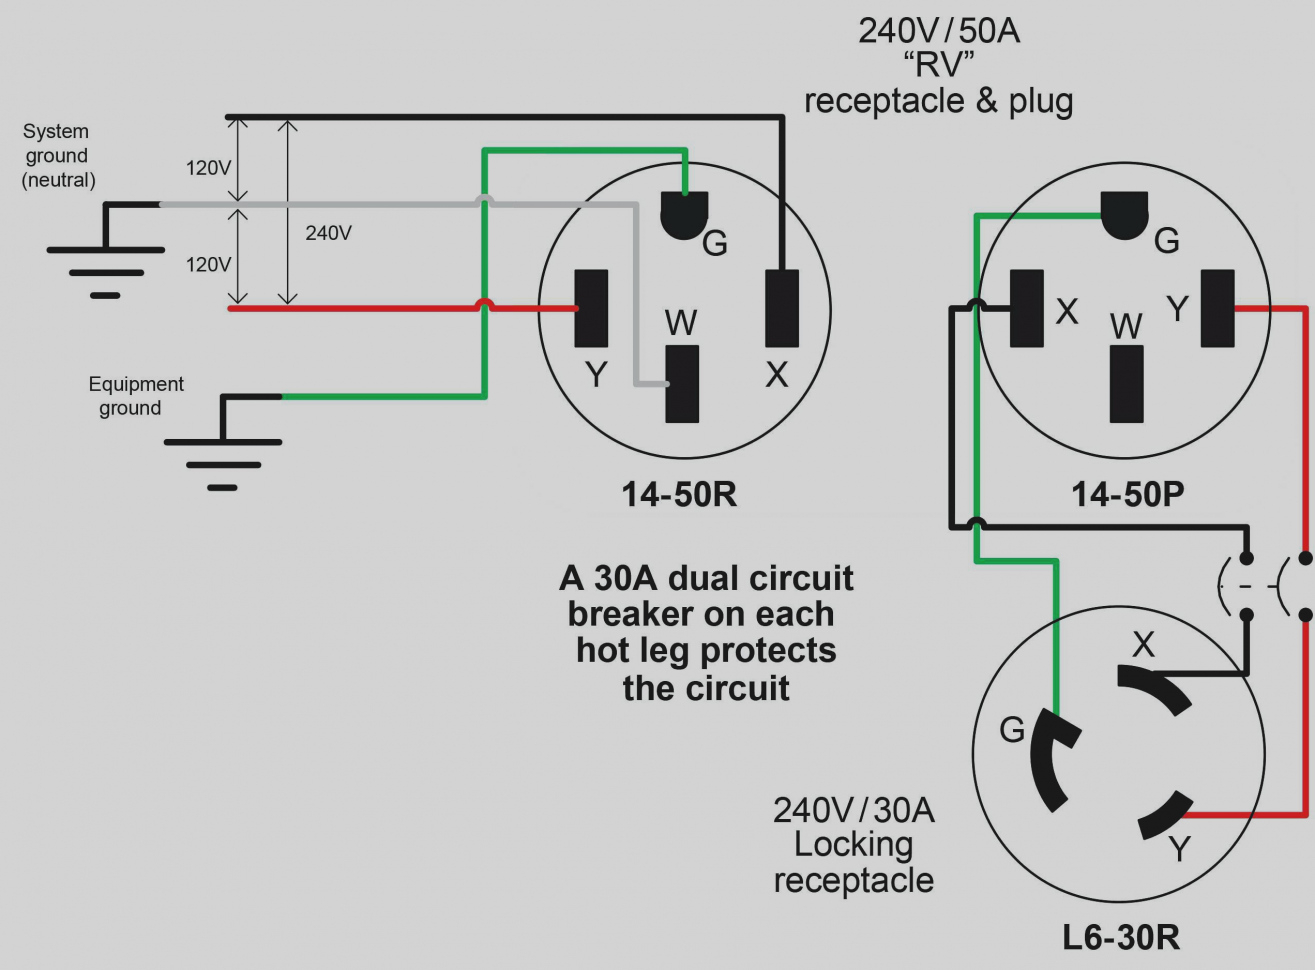 hbl2721 wiring diagram gallery